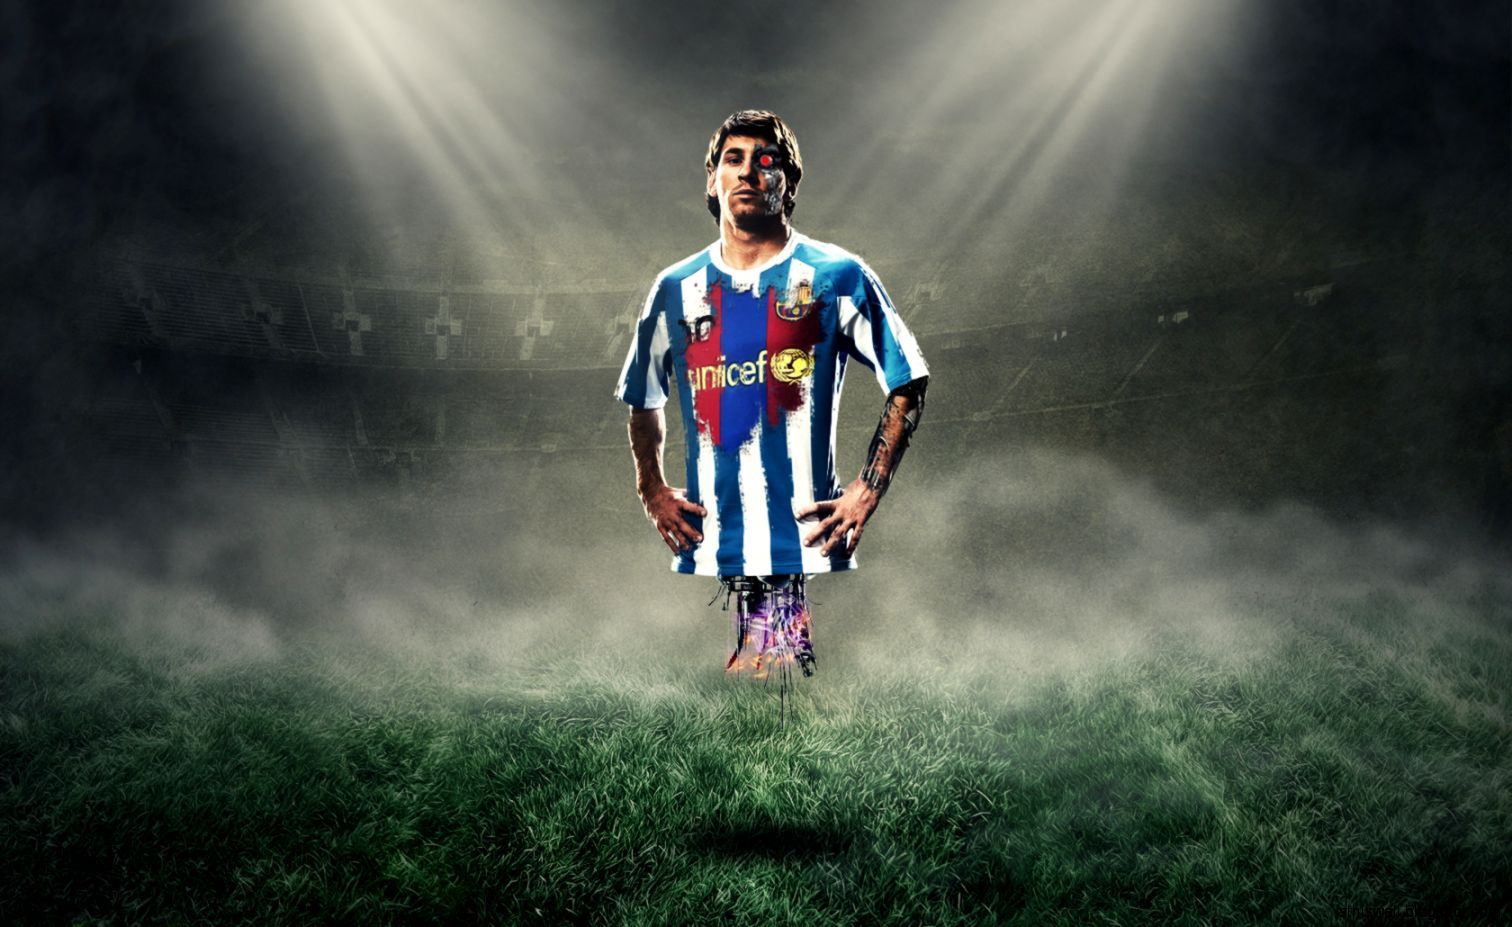 Cool Soccer Pictures Wallpapers (70 Wallpapers) – Adorable Wallpapers